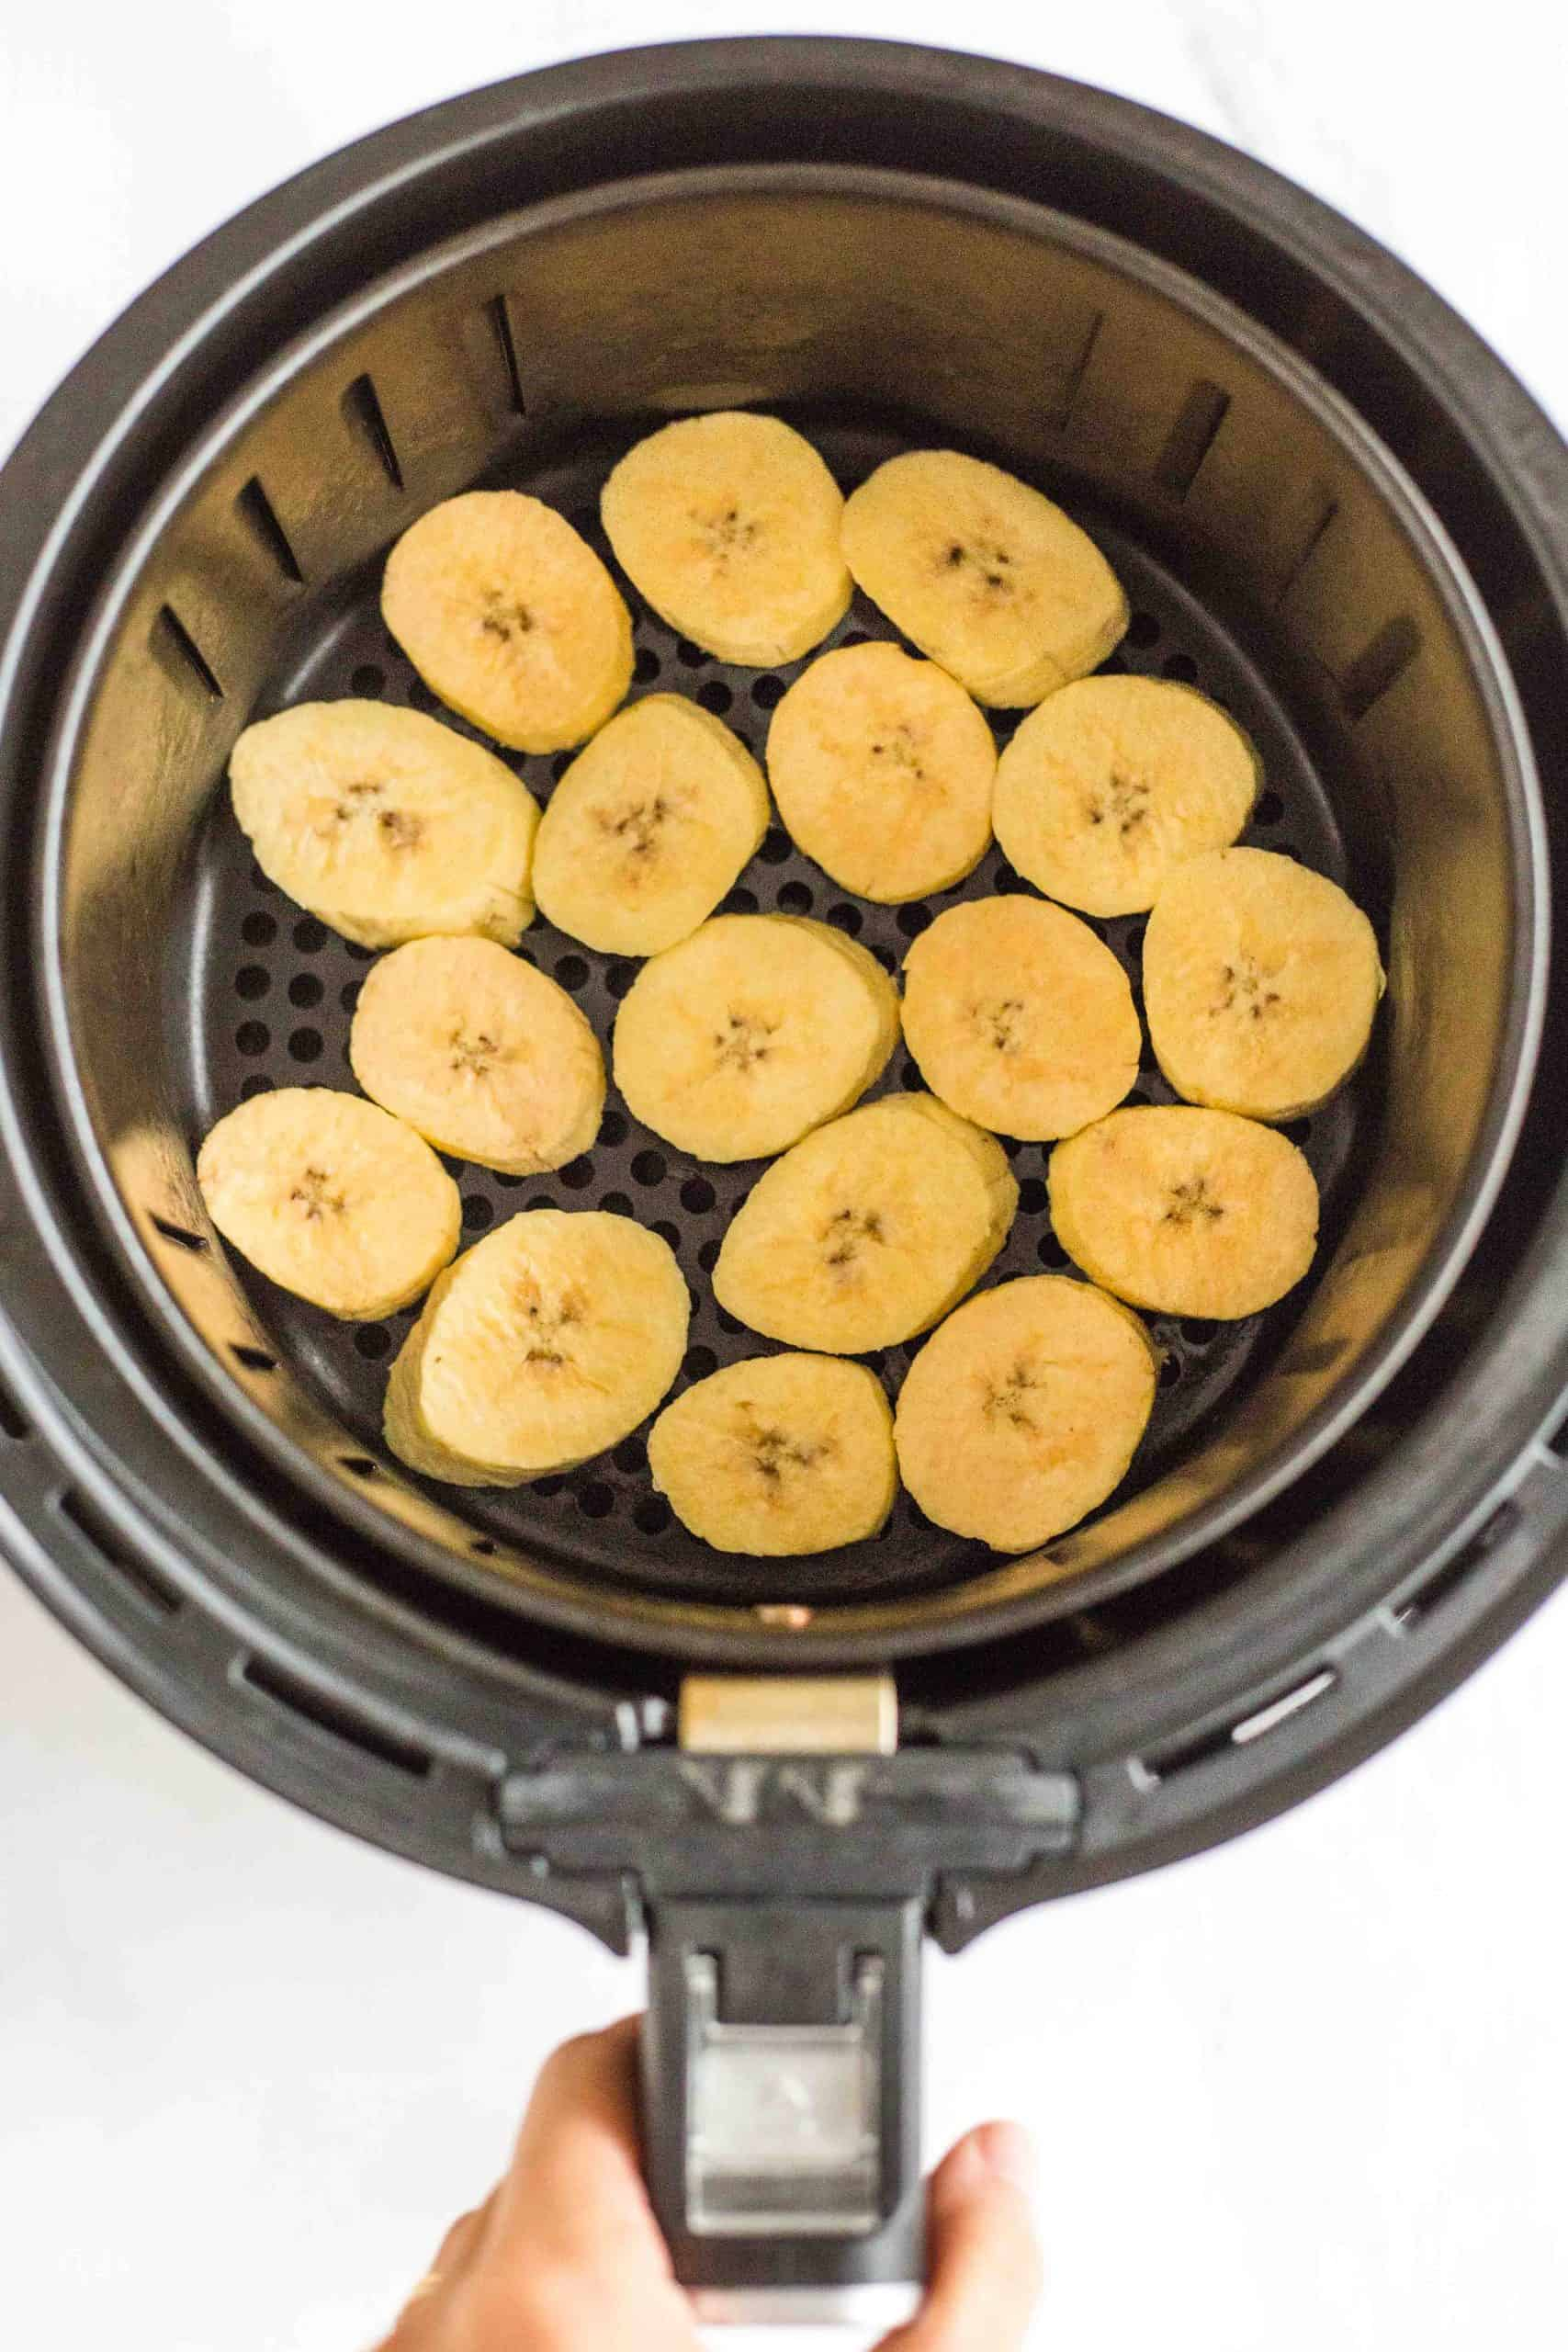 Sliced plantains in a single layer in air fryer basket.